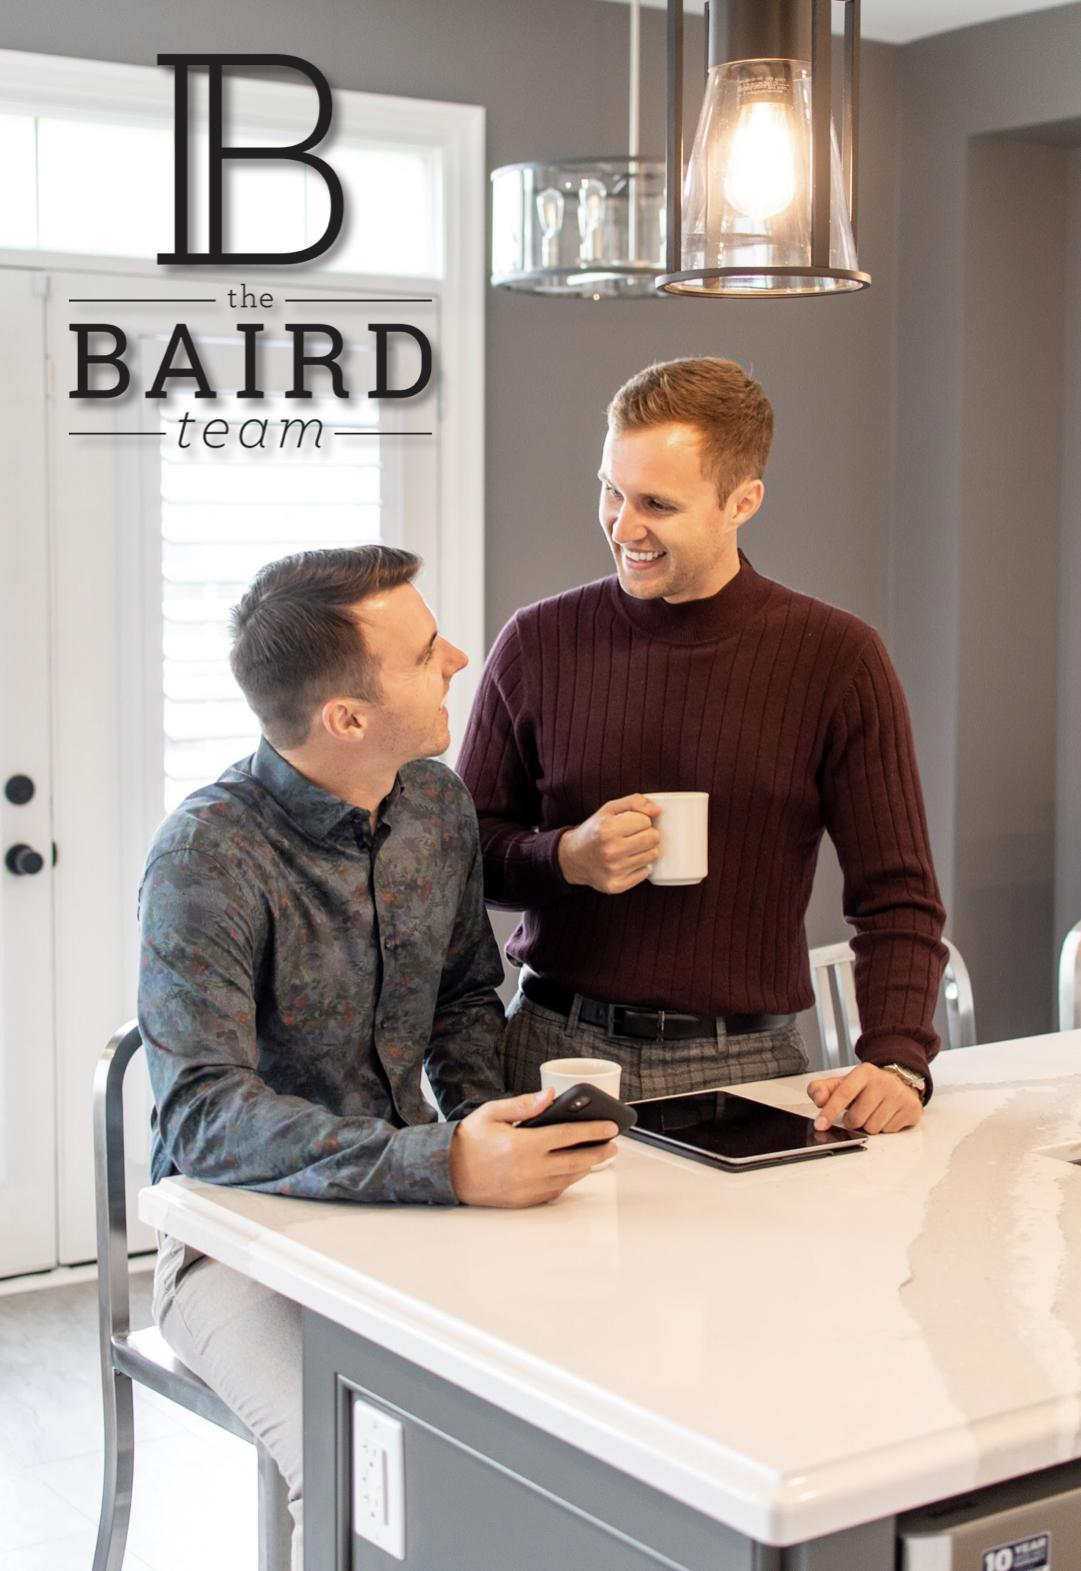 The Baird Real Estate Team   real estate agency   1603 Durham Regional Hwy 2, Courtice, ON L1E 2R7, Canada   9052422716 OR +1 905-242-2716